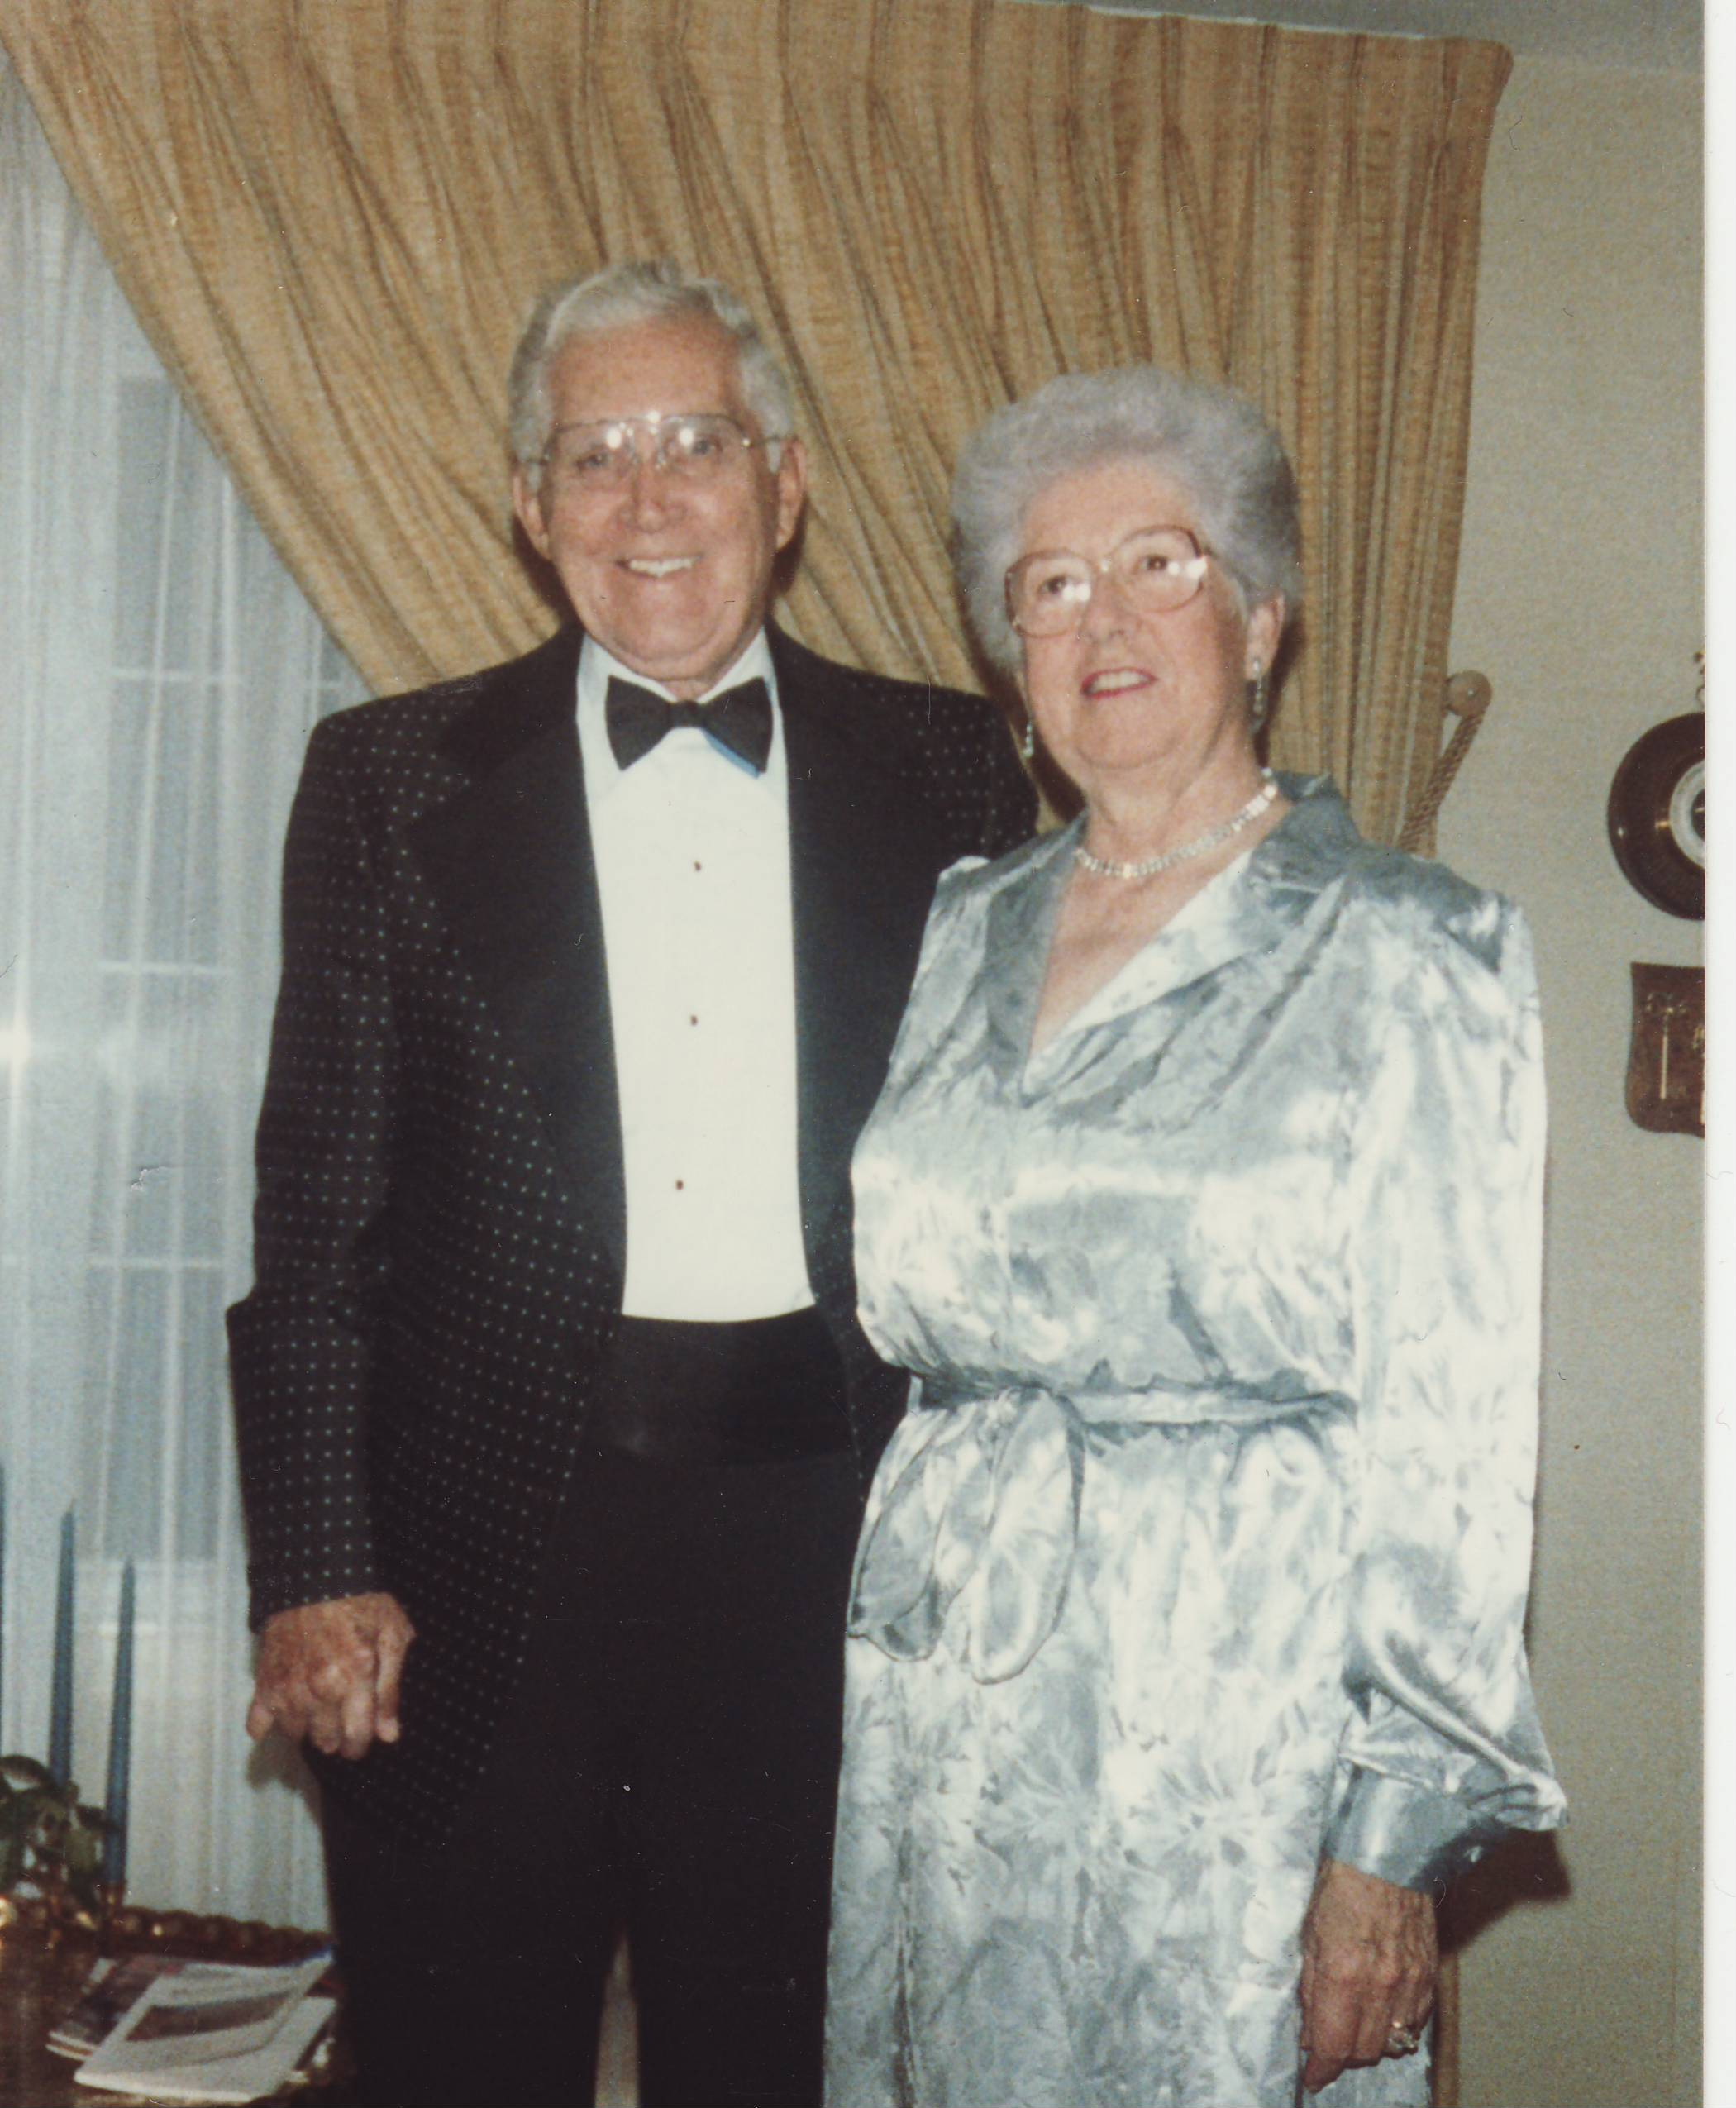 John and Lucille Ponton's Commitment to Serving Others